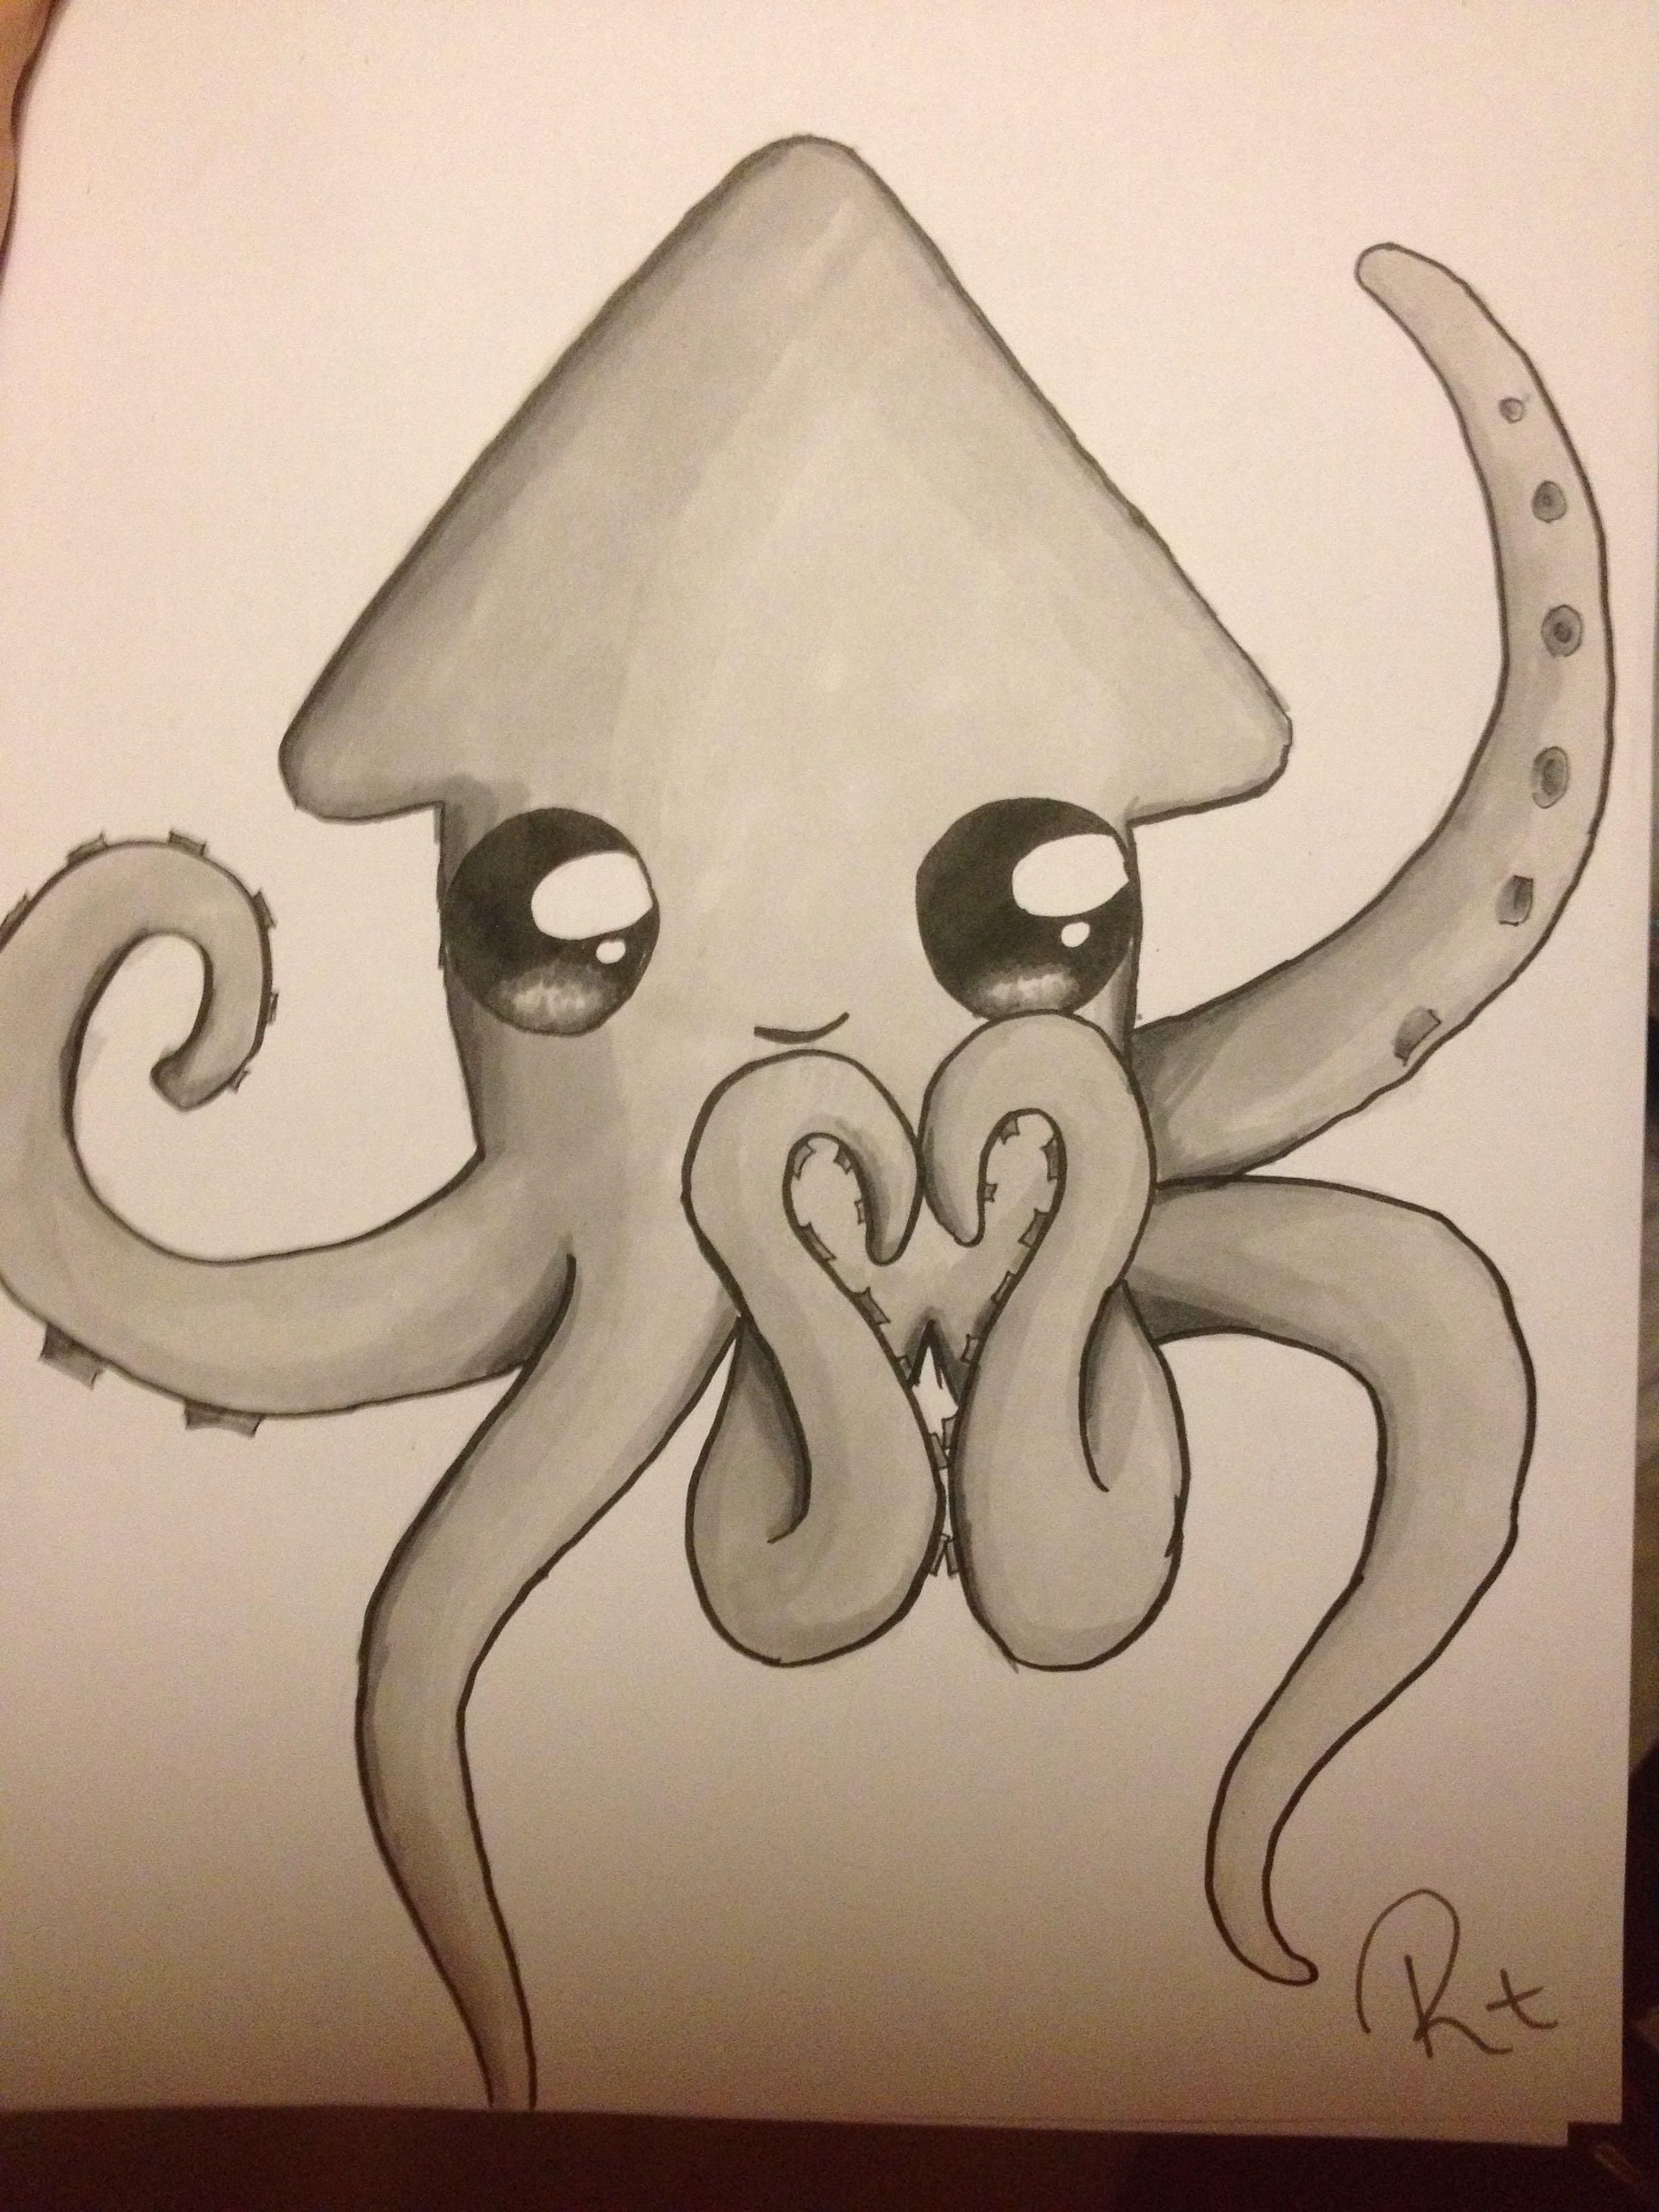 Uncategorized Squid Drawings this reminds me of my friend sydney and we call her squid luv ya easy drawings